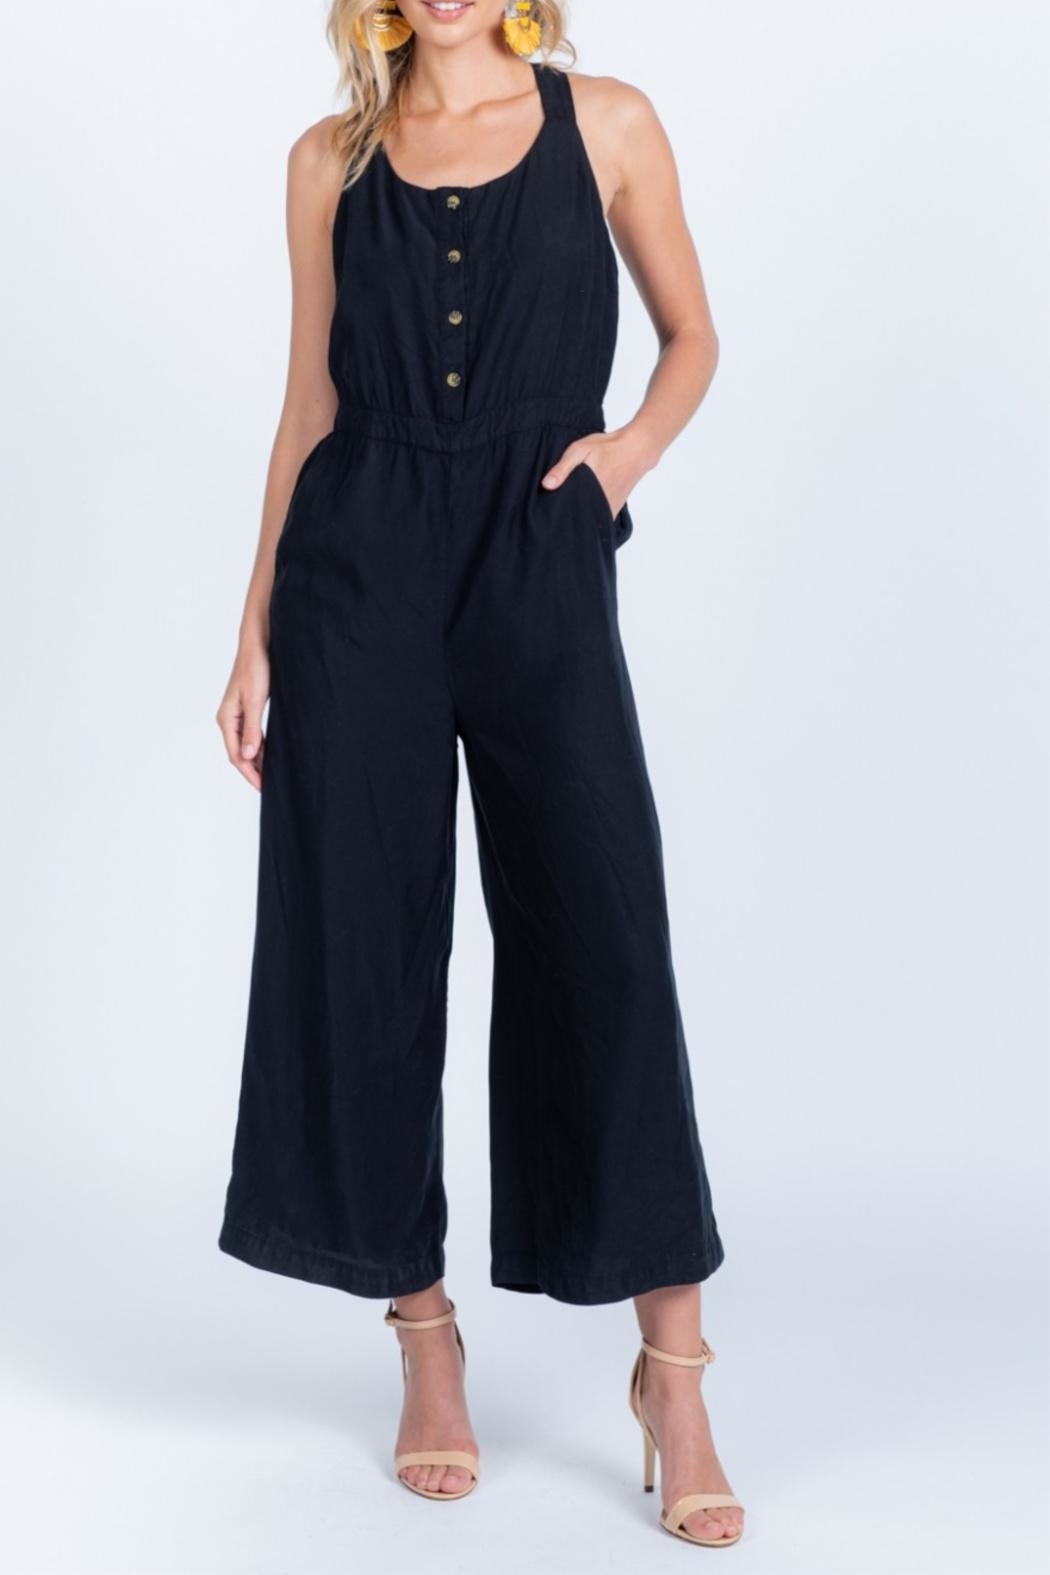 Everly Tie Back Jumpsuit - Main Image